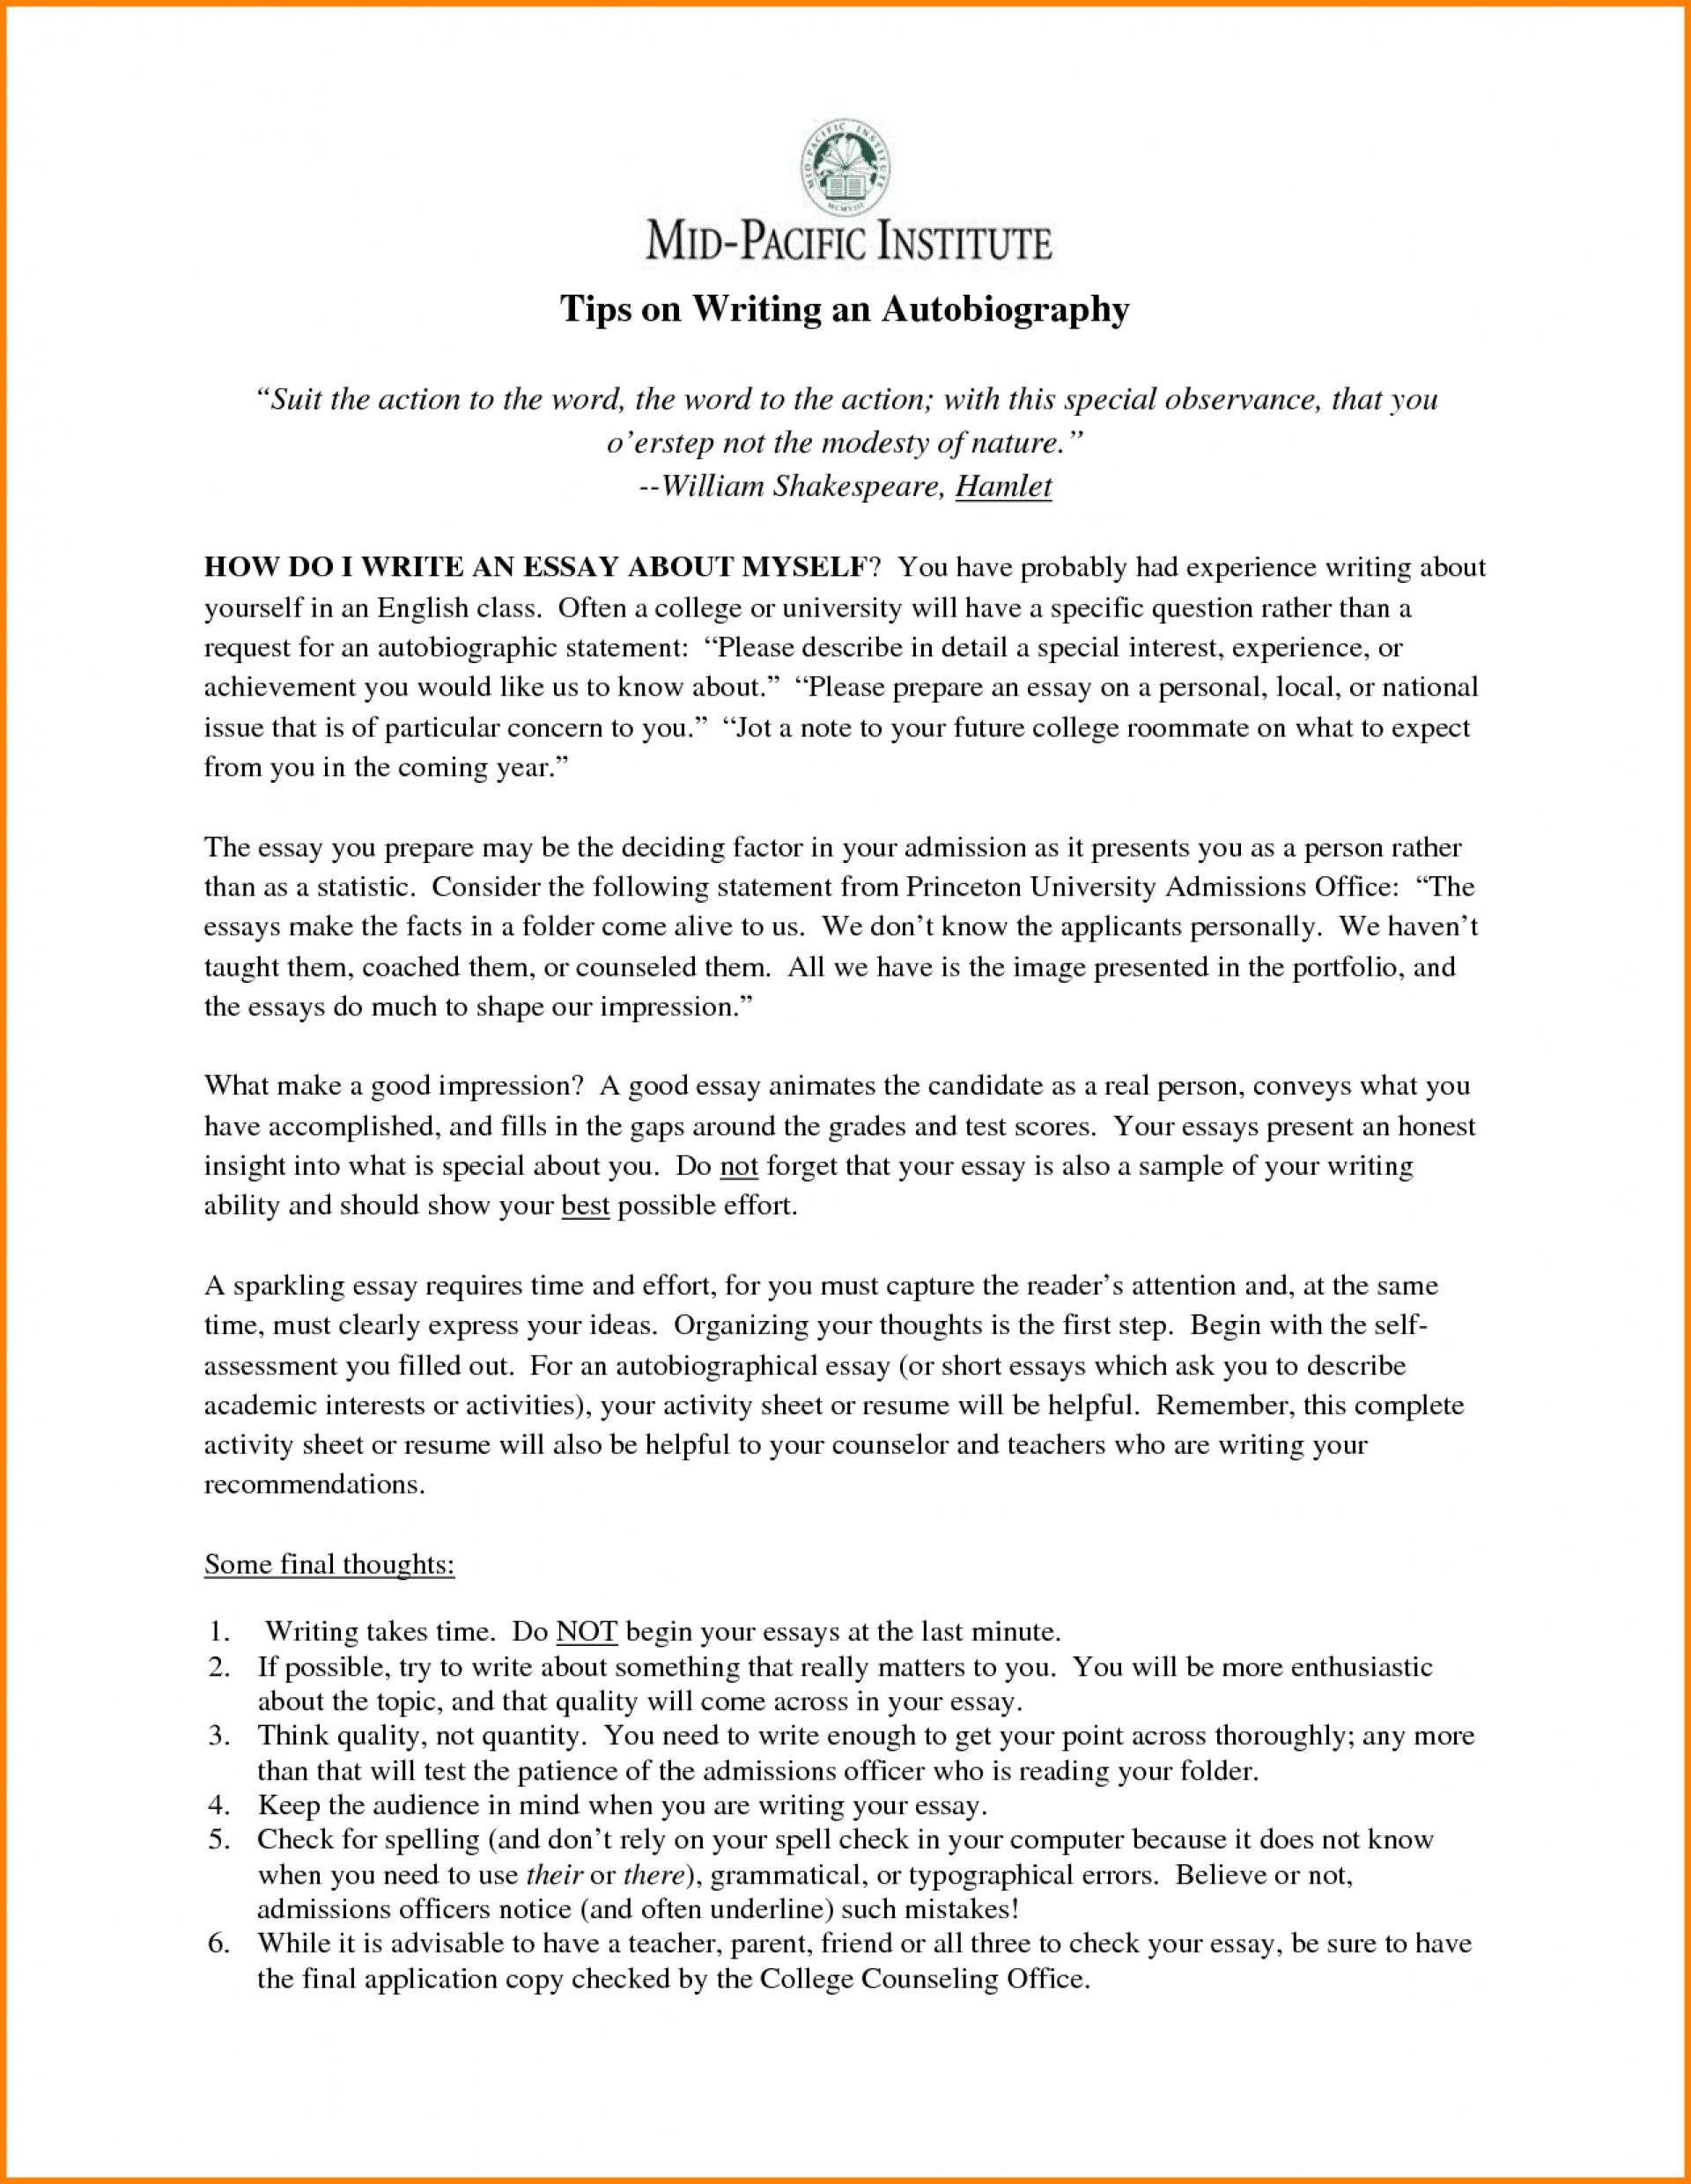 003 How To Start Good Essay College Application About Yourself Ways Essays L Awesome A Paper For Introduction Example Biography 1920